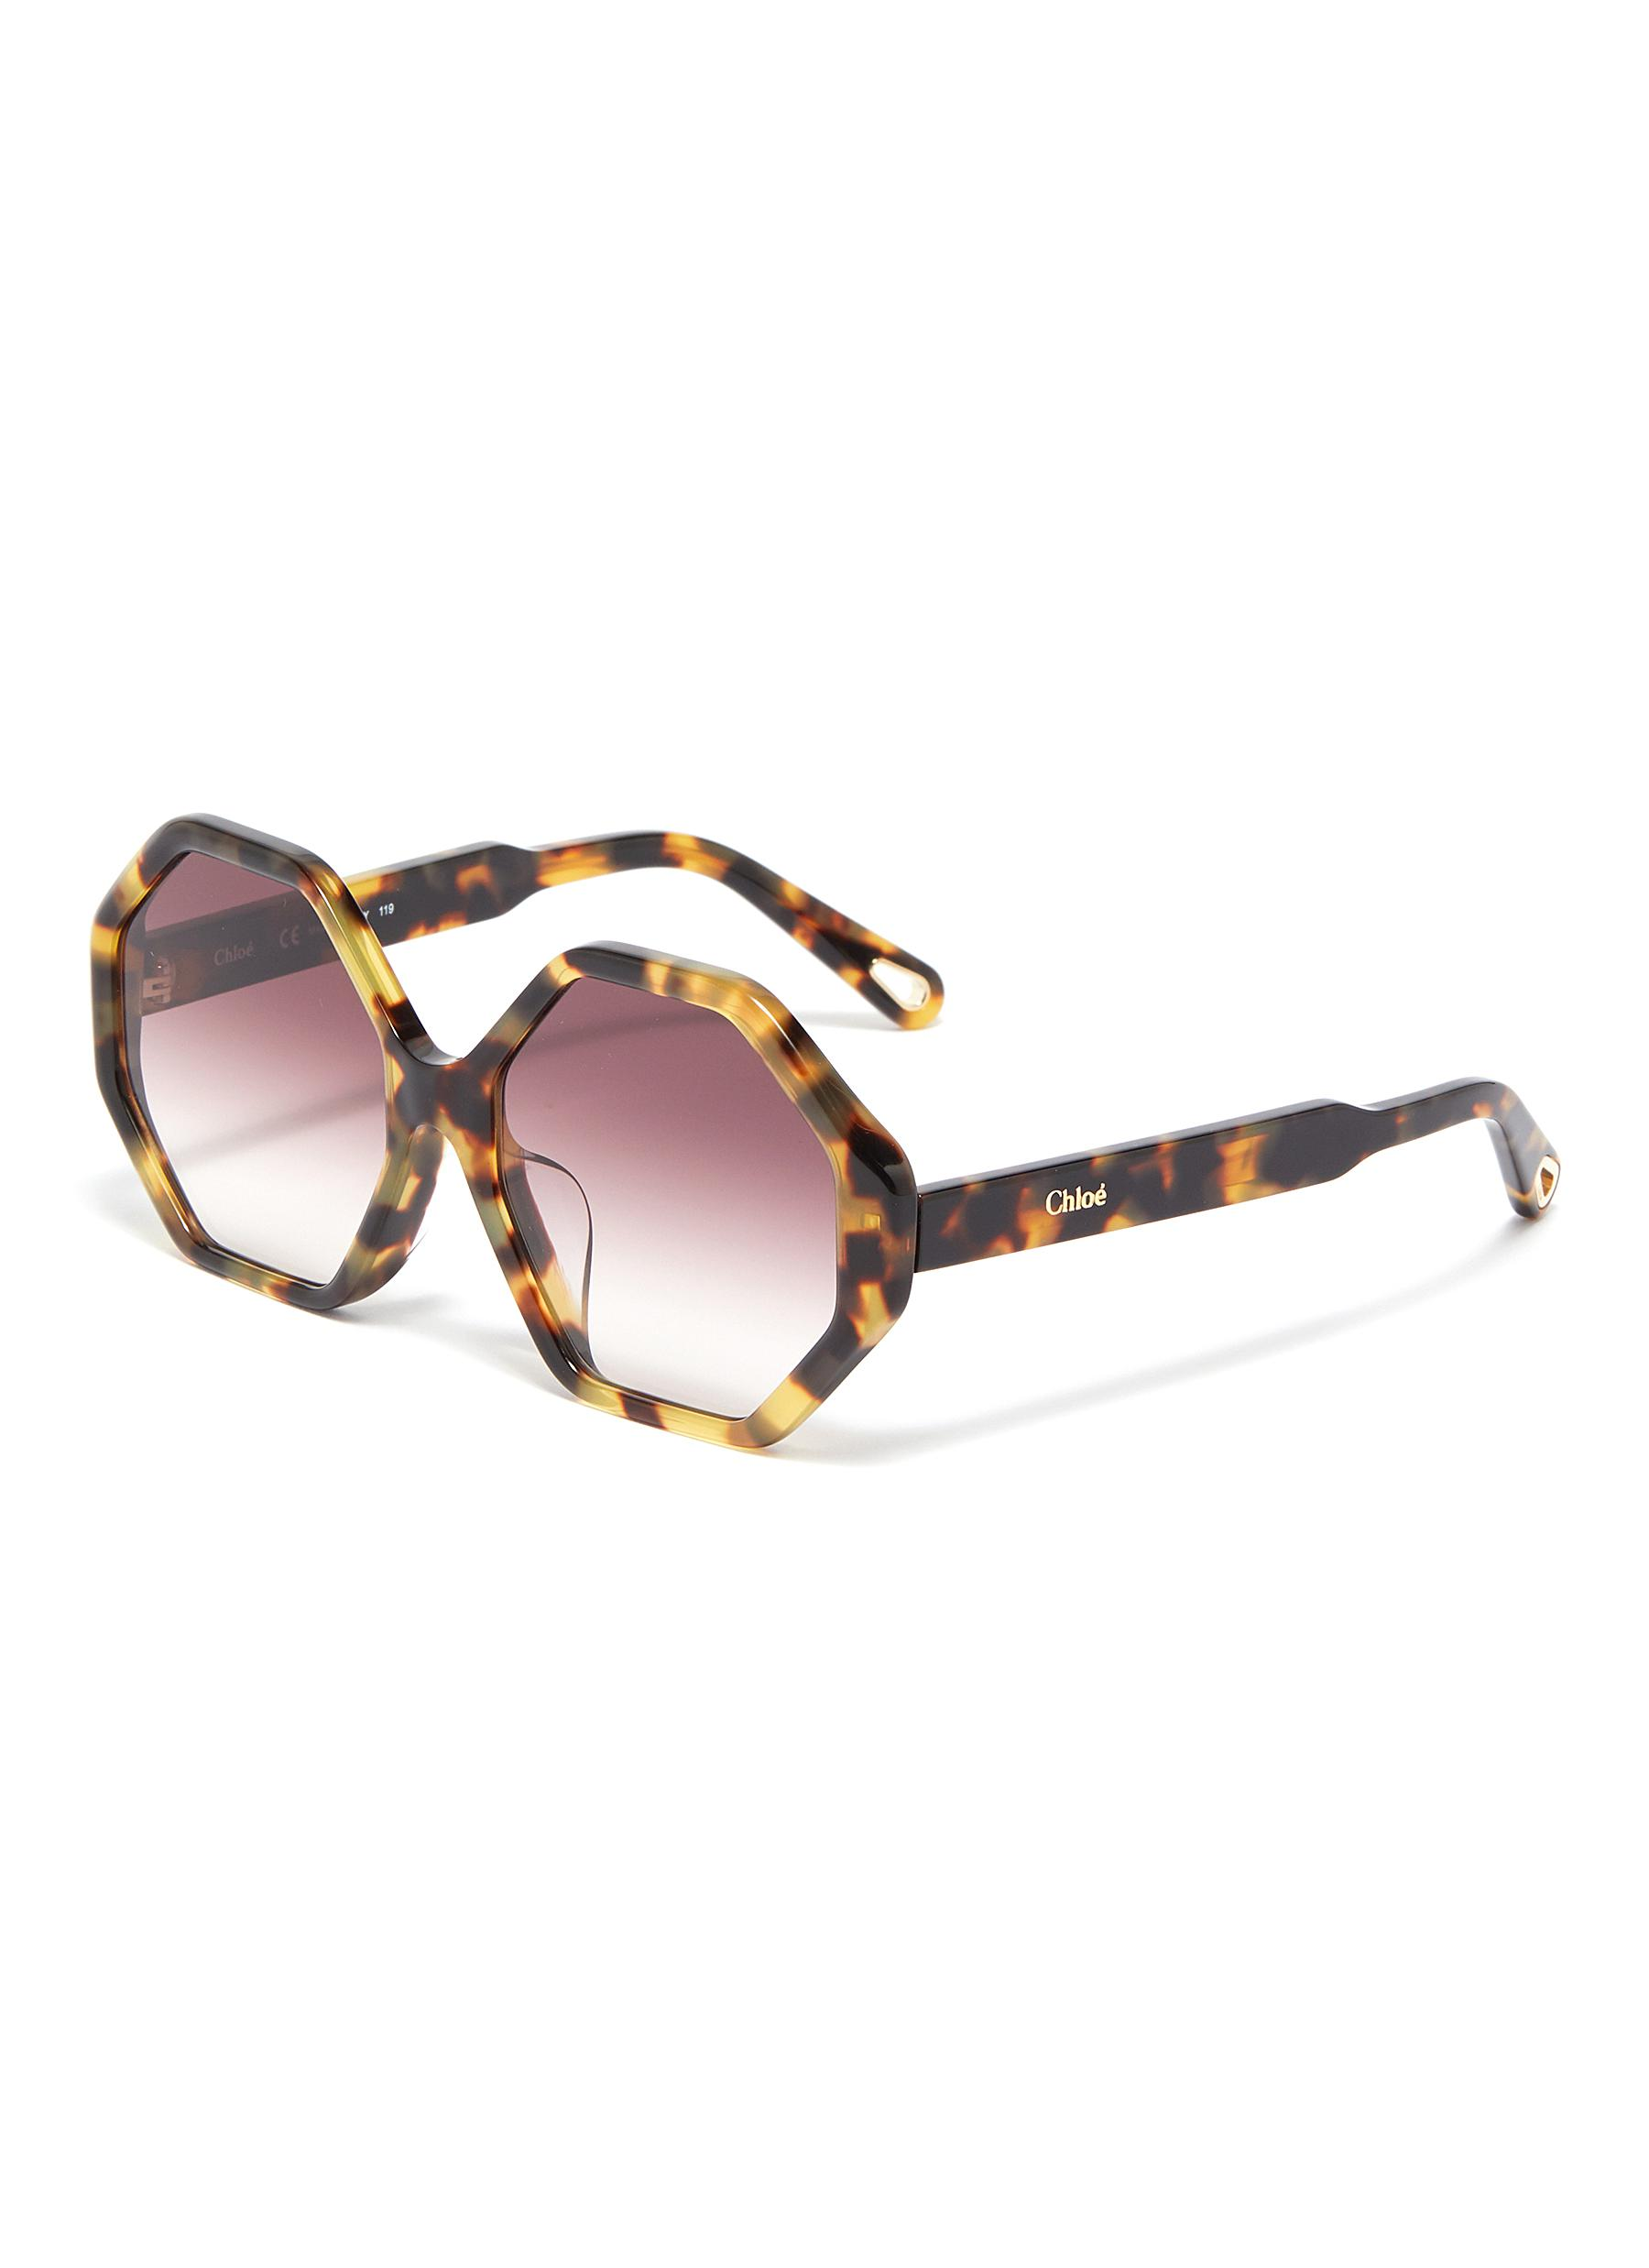 906e32439d5 Main View - Click To Enlarge - Chloé -  Willow  tortoiseshell acetate  octagon frame